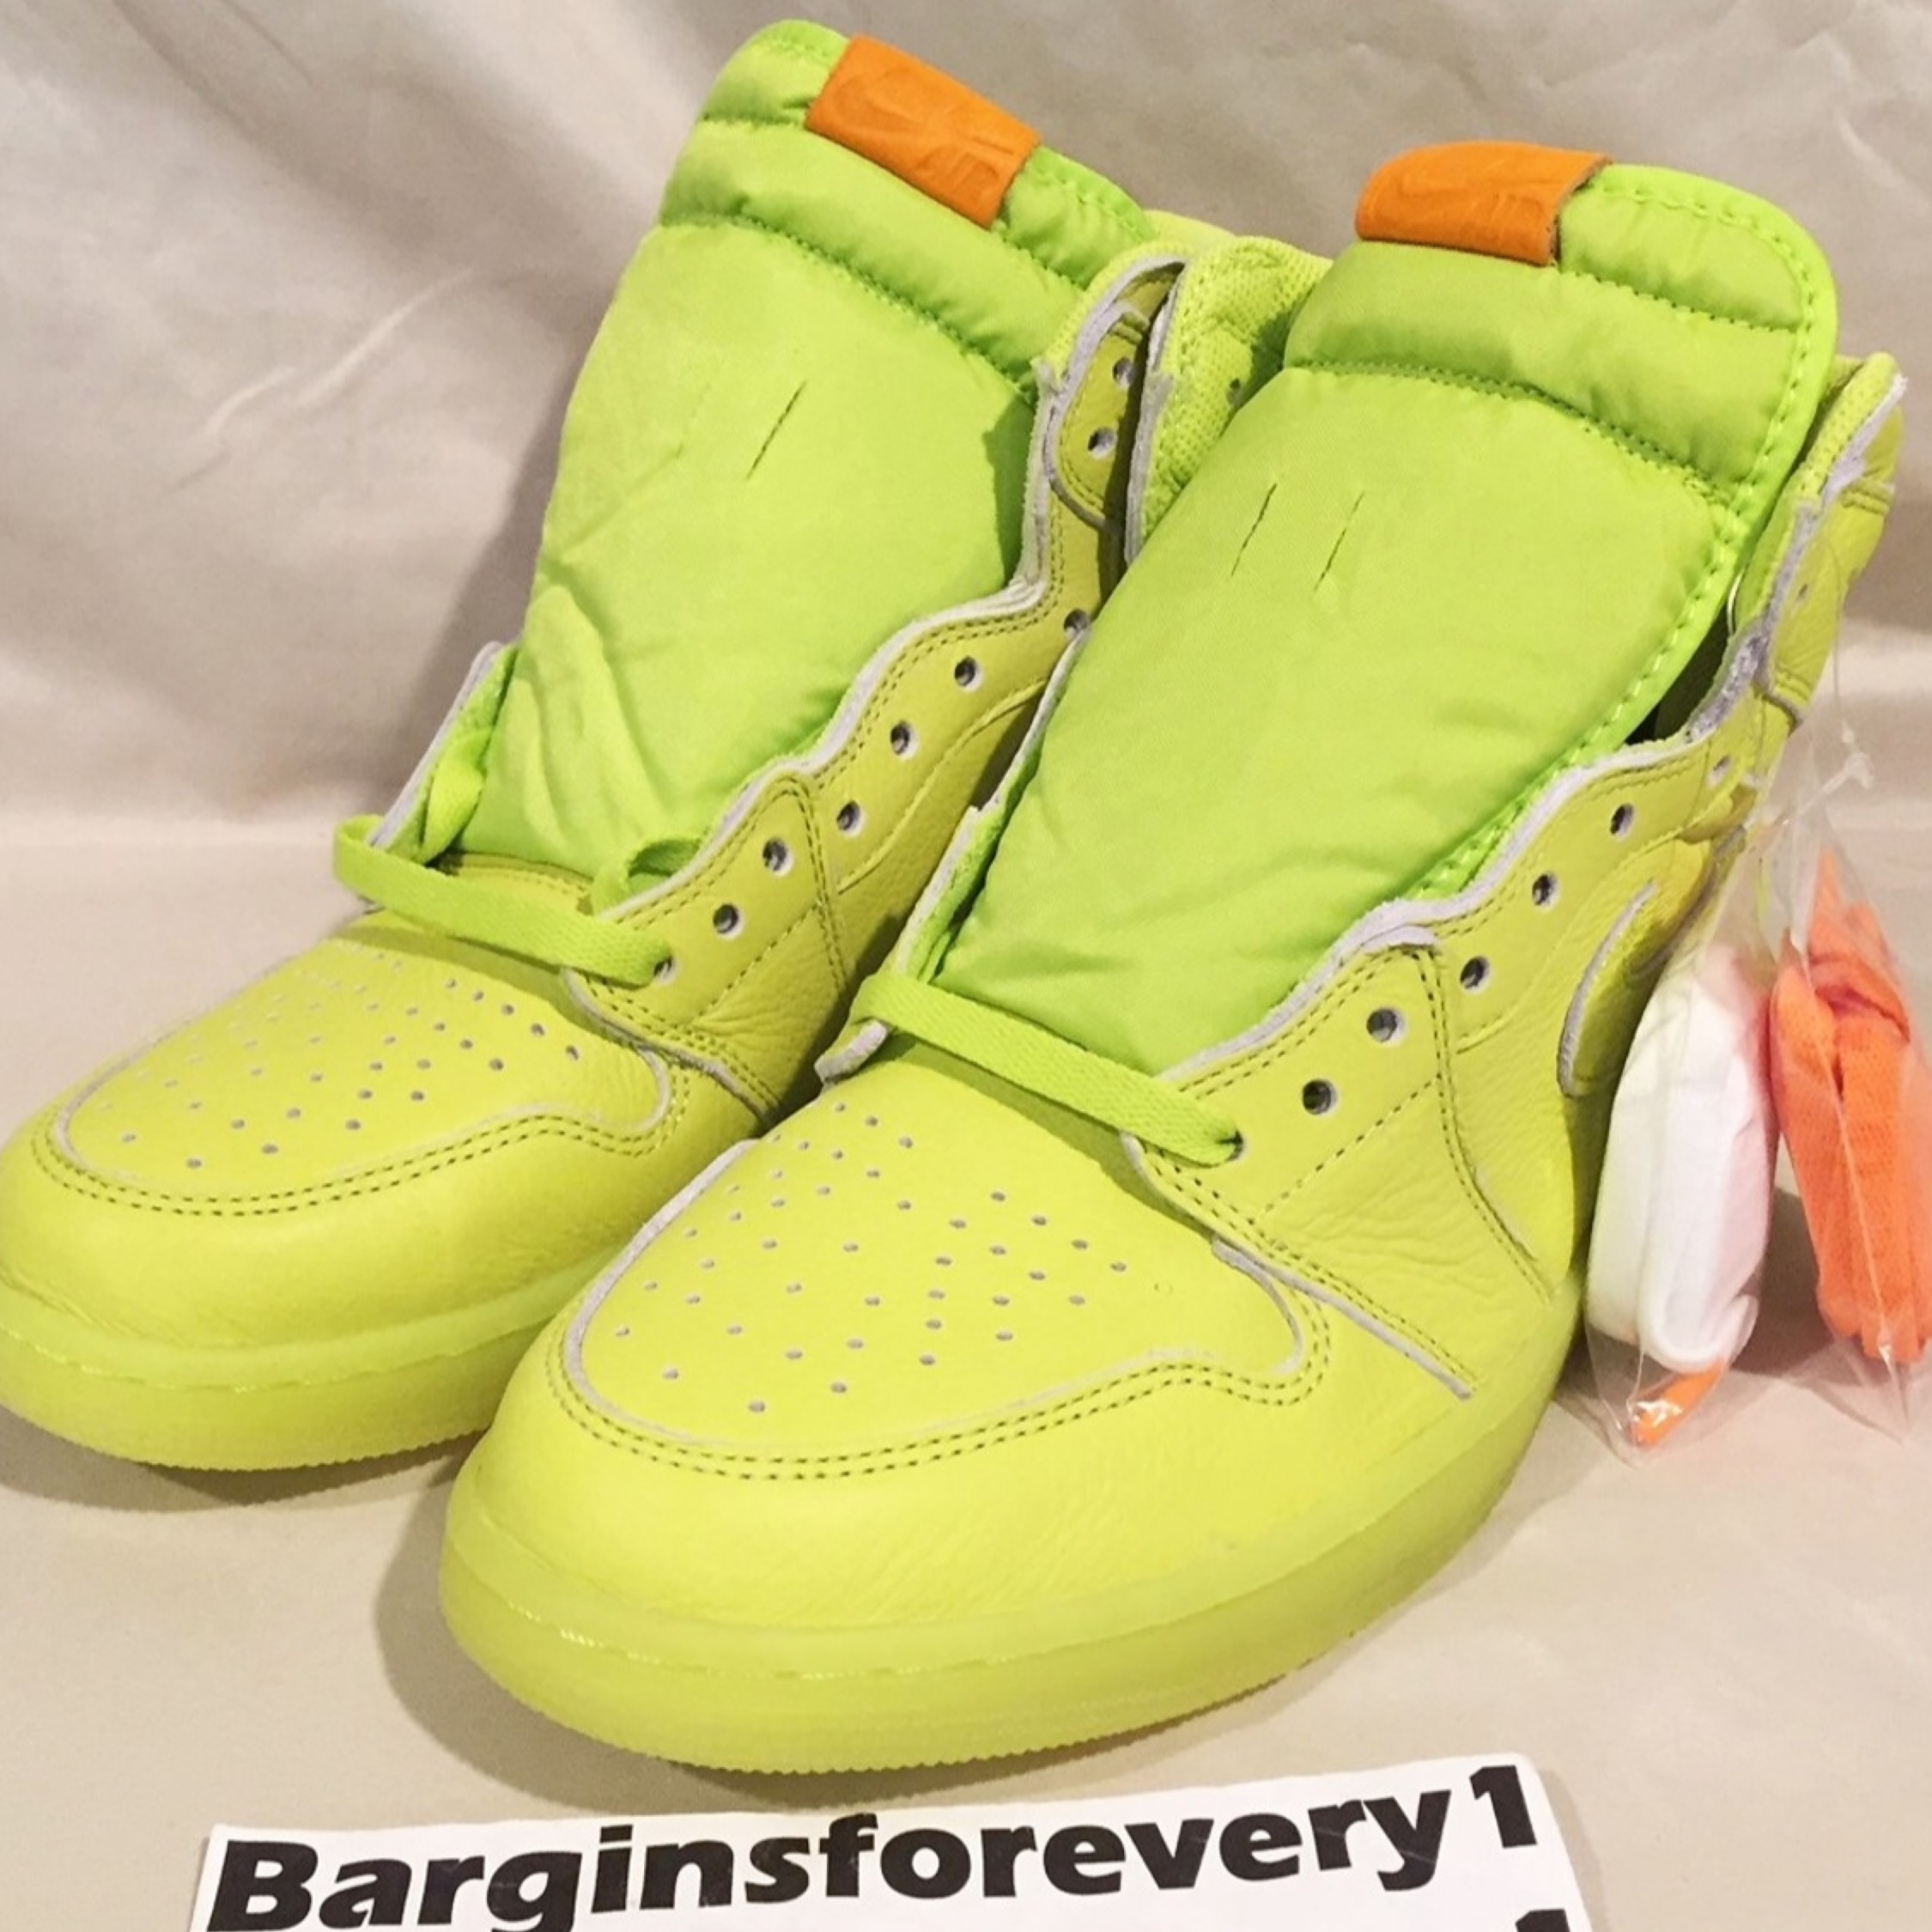 reputable site 30b36 6fee6 Air Jordan 1 Retro Hi Og Gatorade